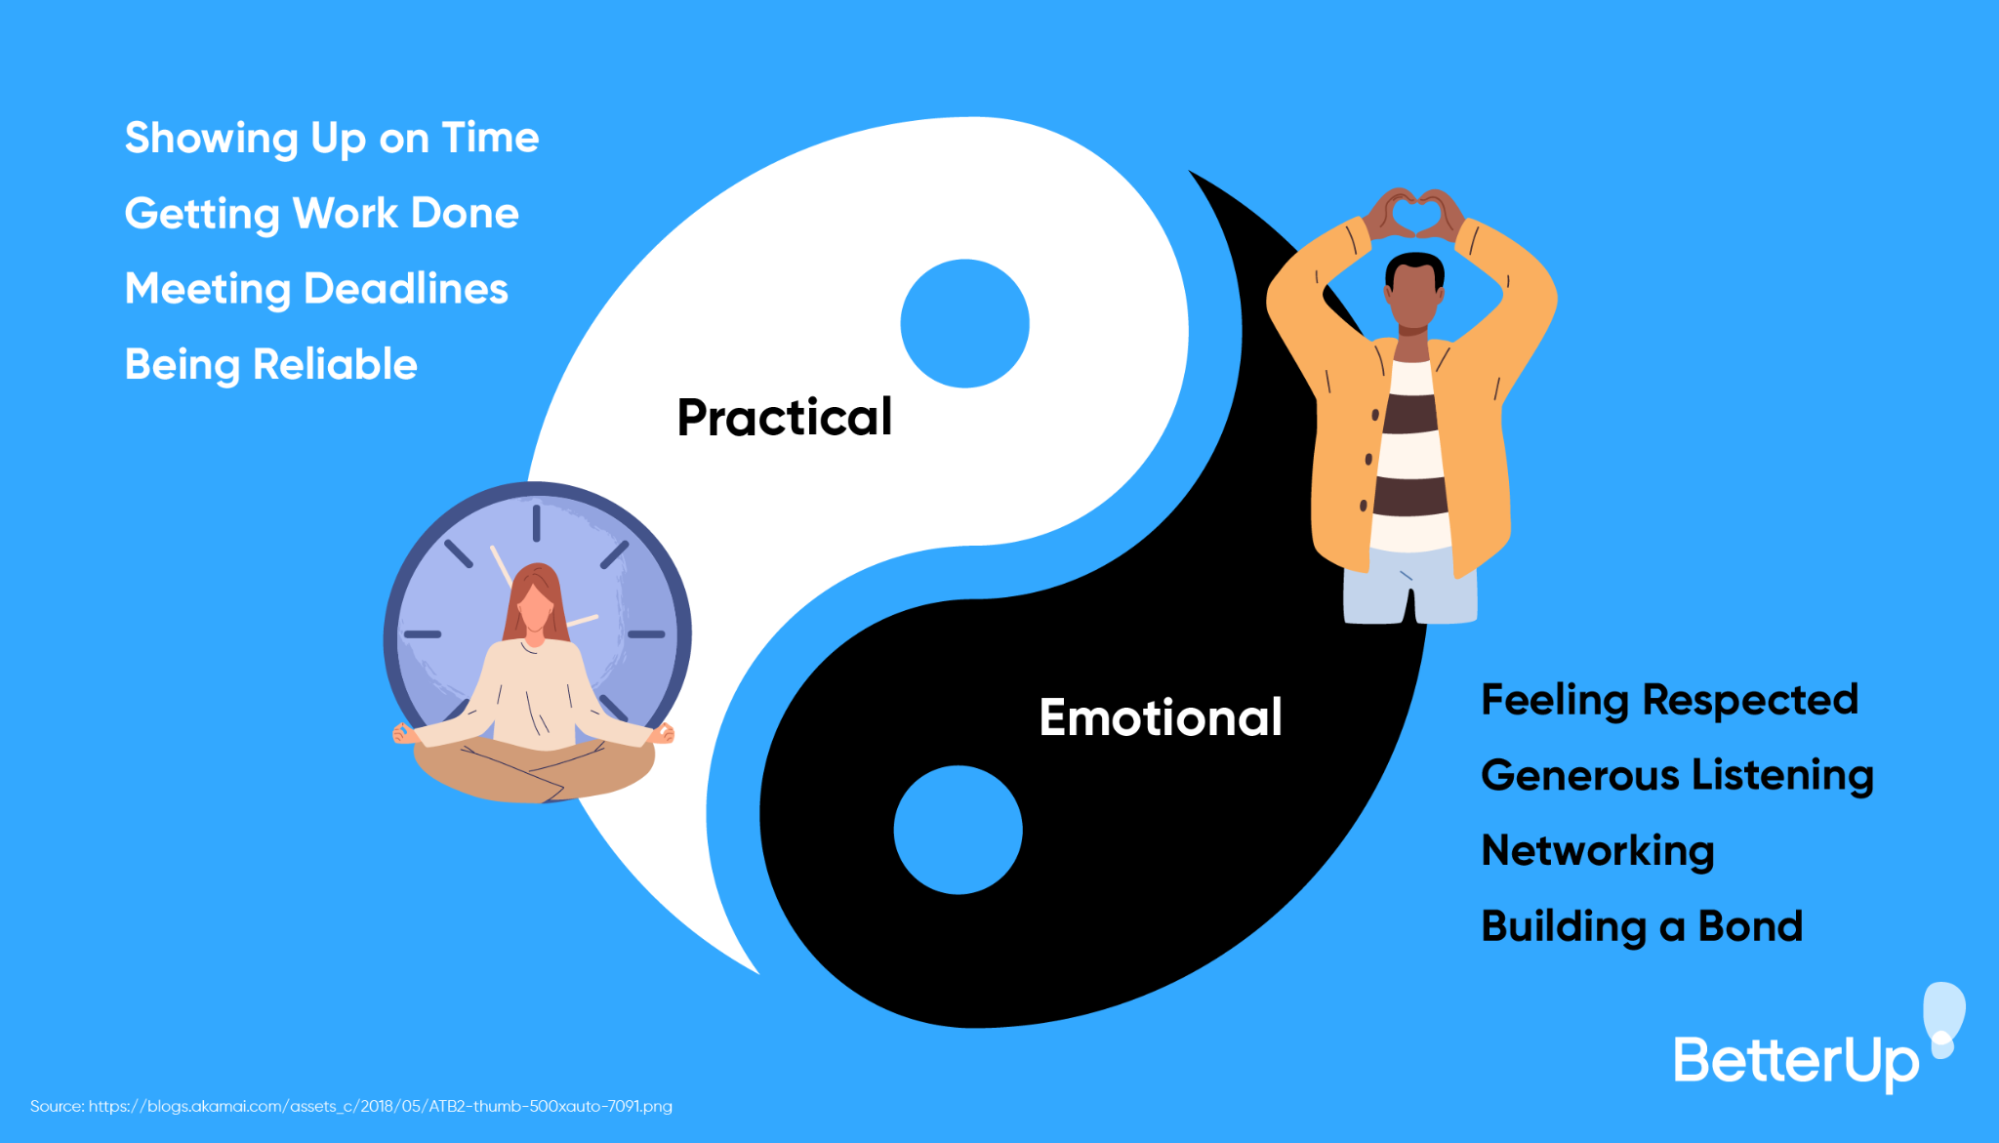 interconnected-nature-of-practical-and-emotional-trust-how-to-build-trust